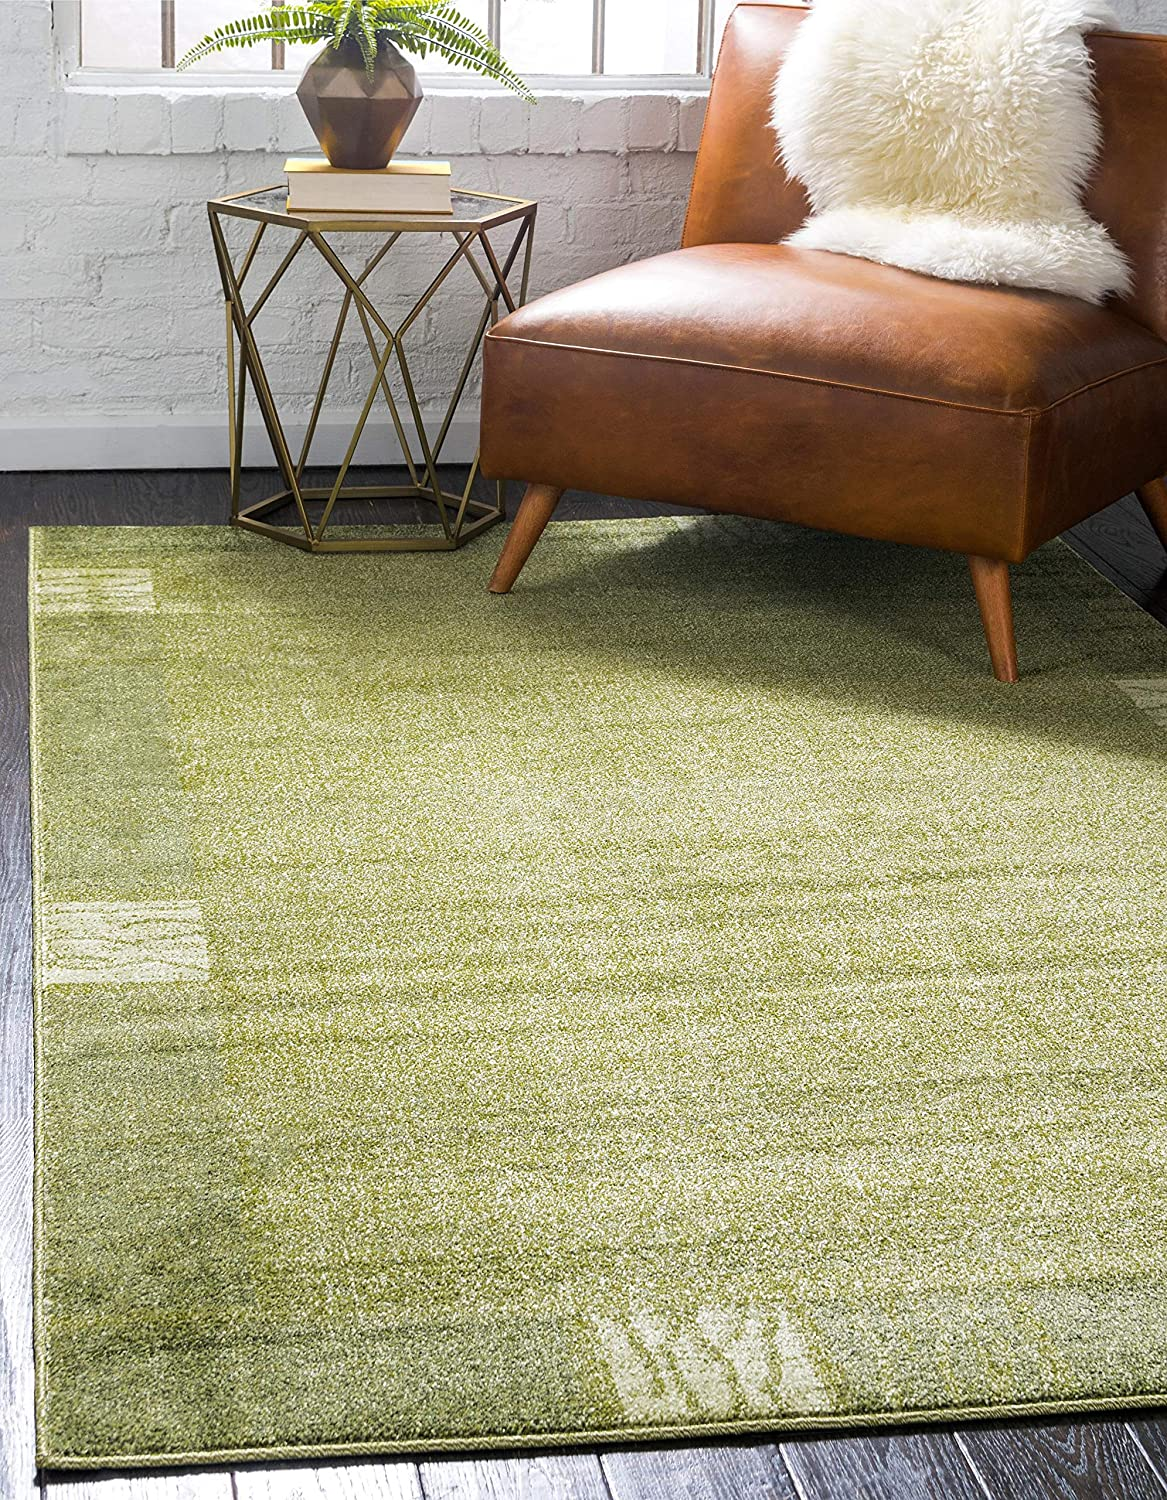 Unique Loom Del Mar Collection Contemporary Transitional Light Green Area Rug (5' 0 x 8' 0)